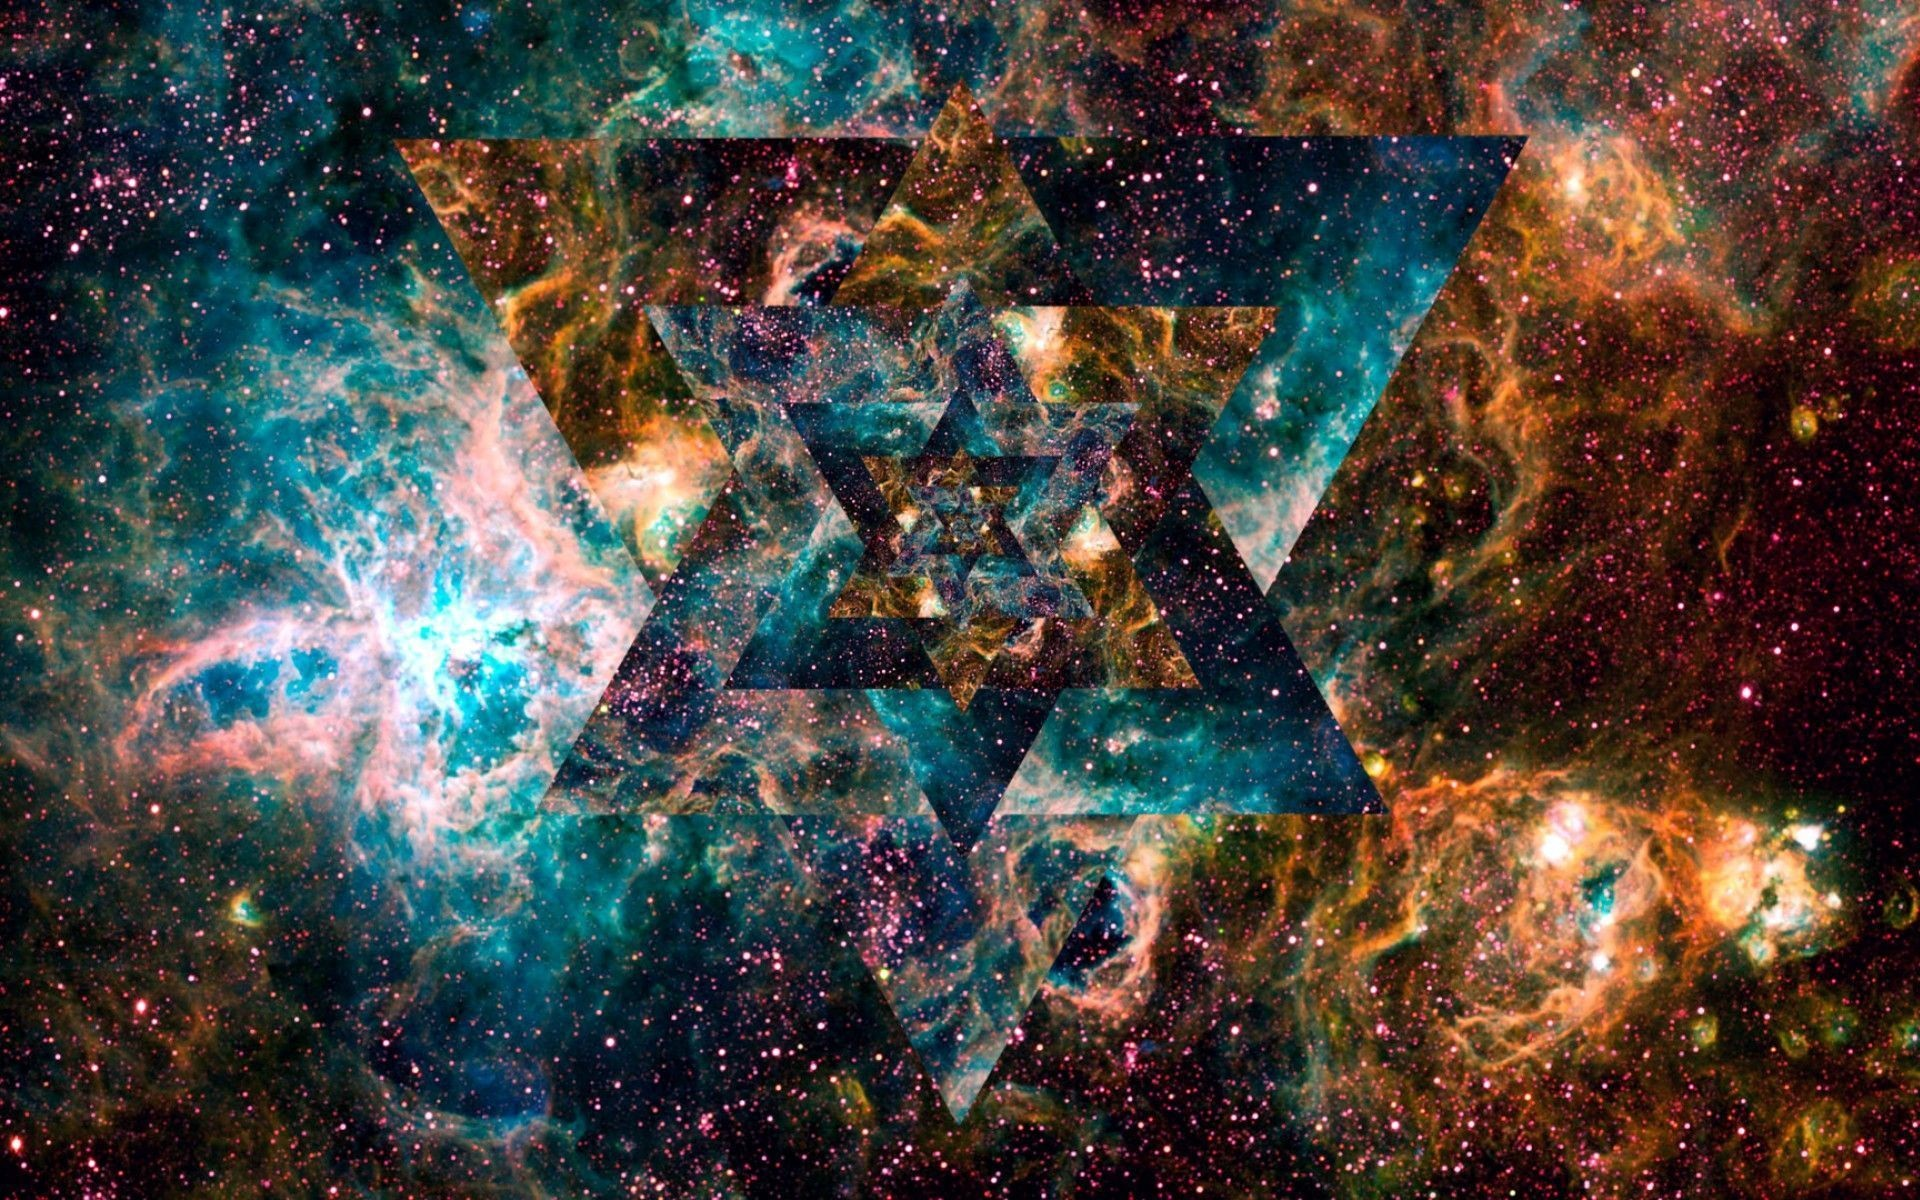 Trippy Space Wallpapers Wallpaper 1920×1080 Trippy Space Backgrounds (43  Wallpapers) | Adorable